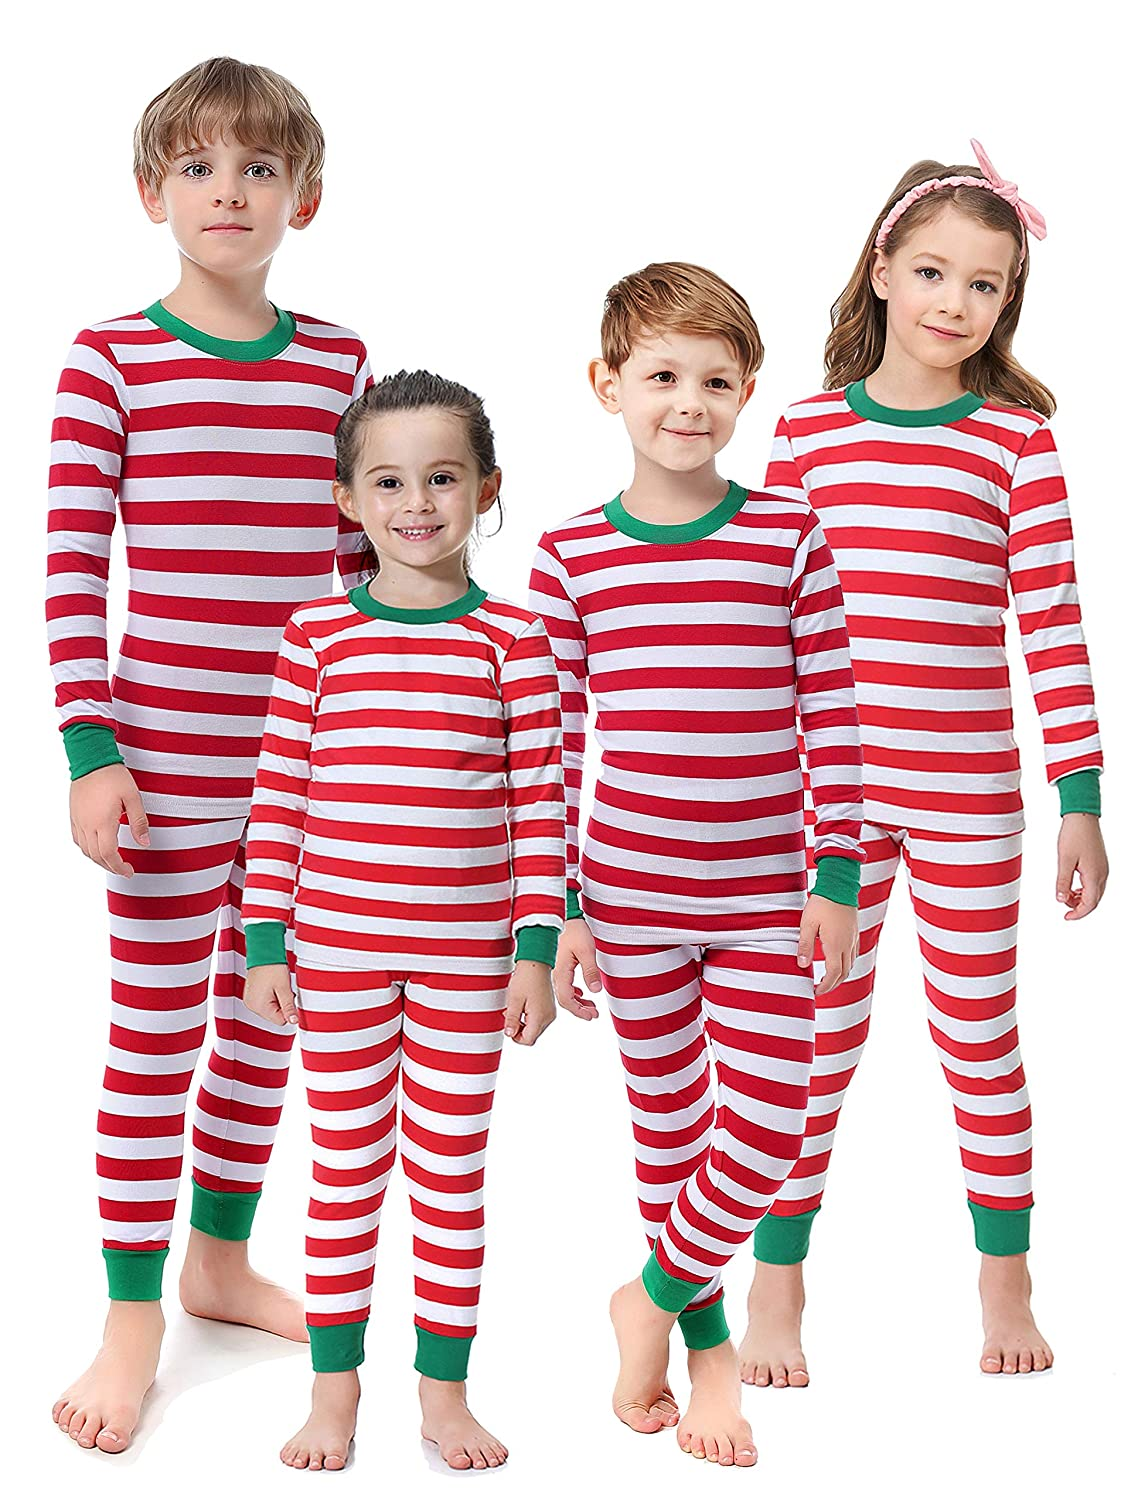 Amazon.com  Matching Family Christmas Boys Girls Pajamas Striped Kids  Sleepwear Children Clothes  Clothing d26e119d6